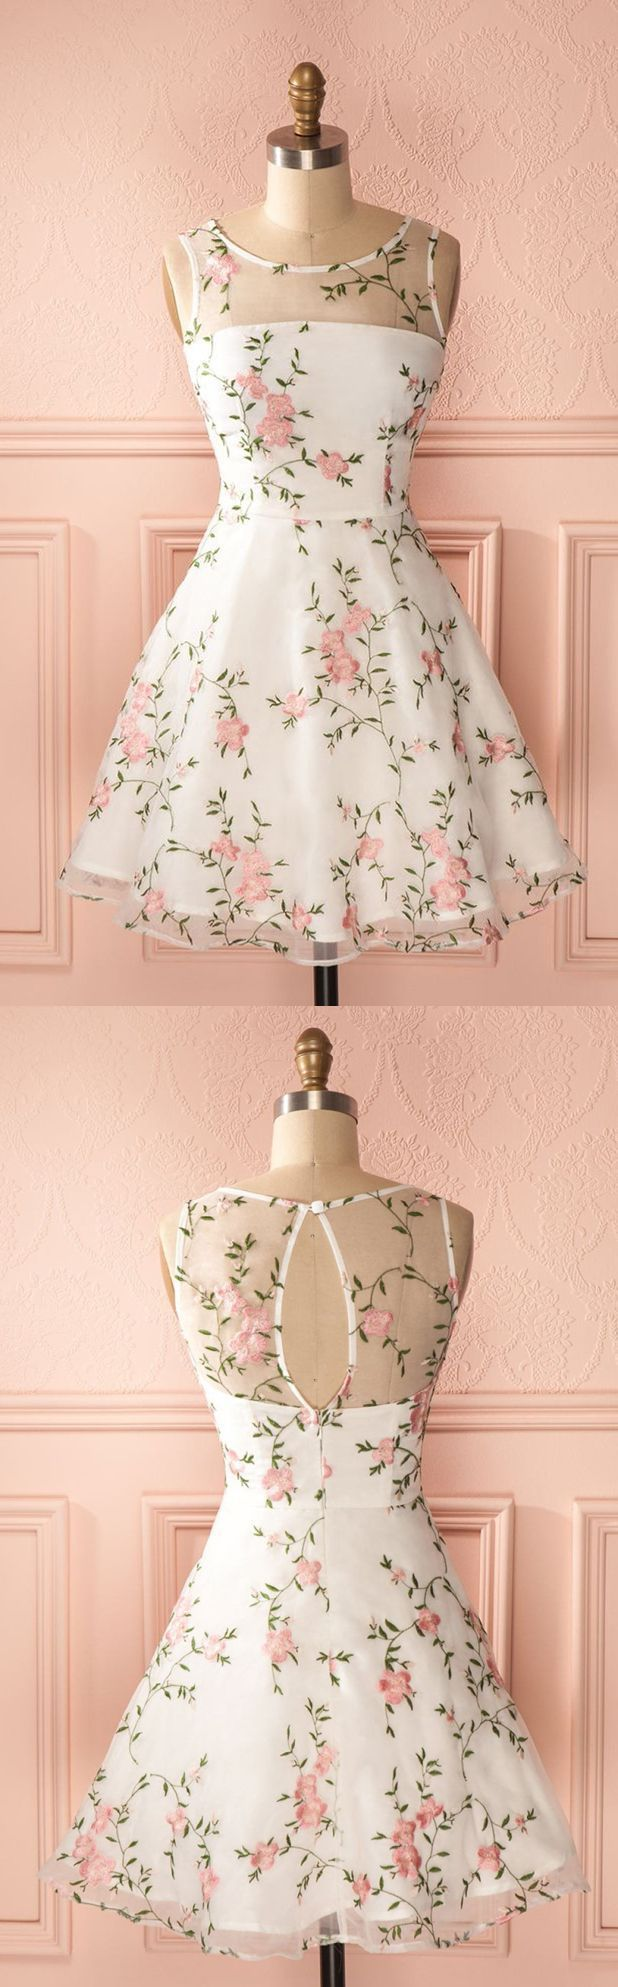 Homecoming dresses , cute short party dresses, modest key hole